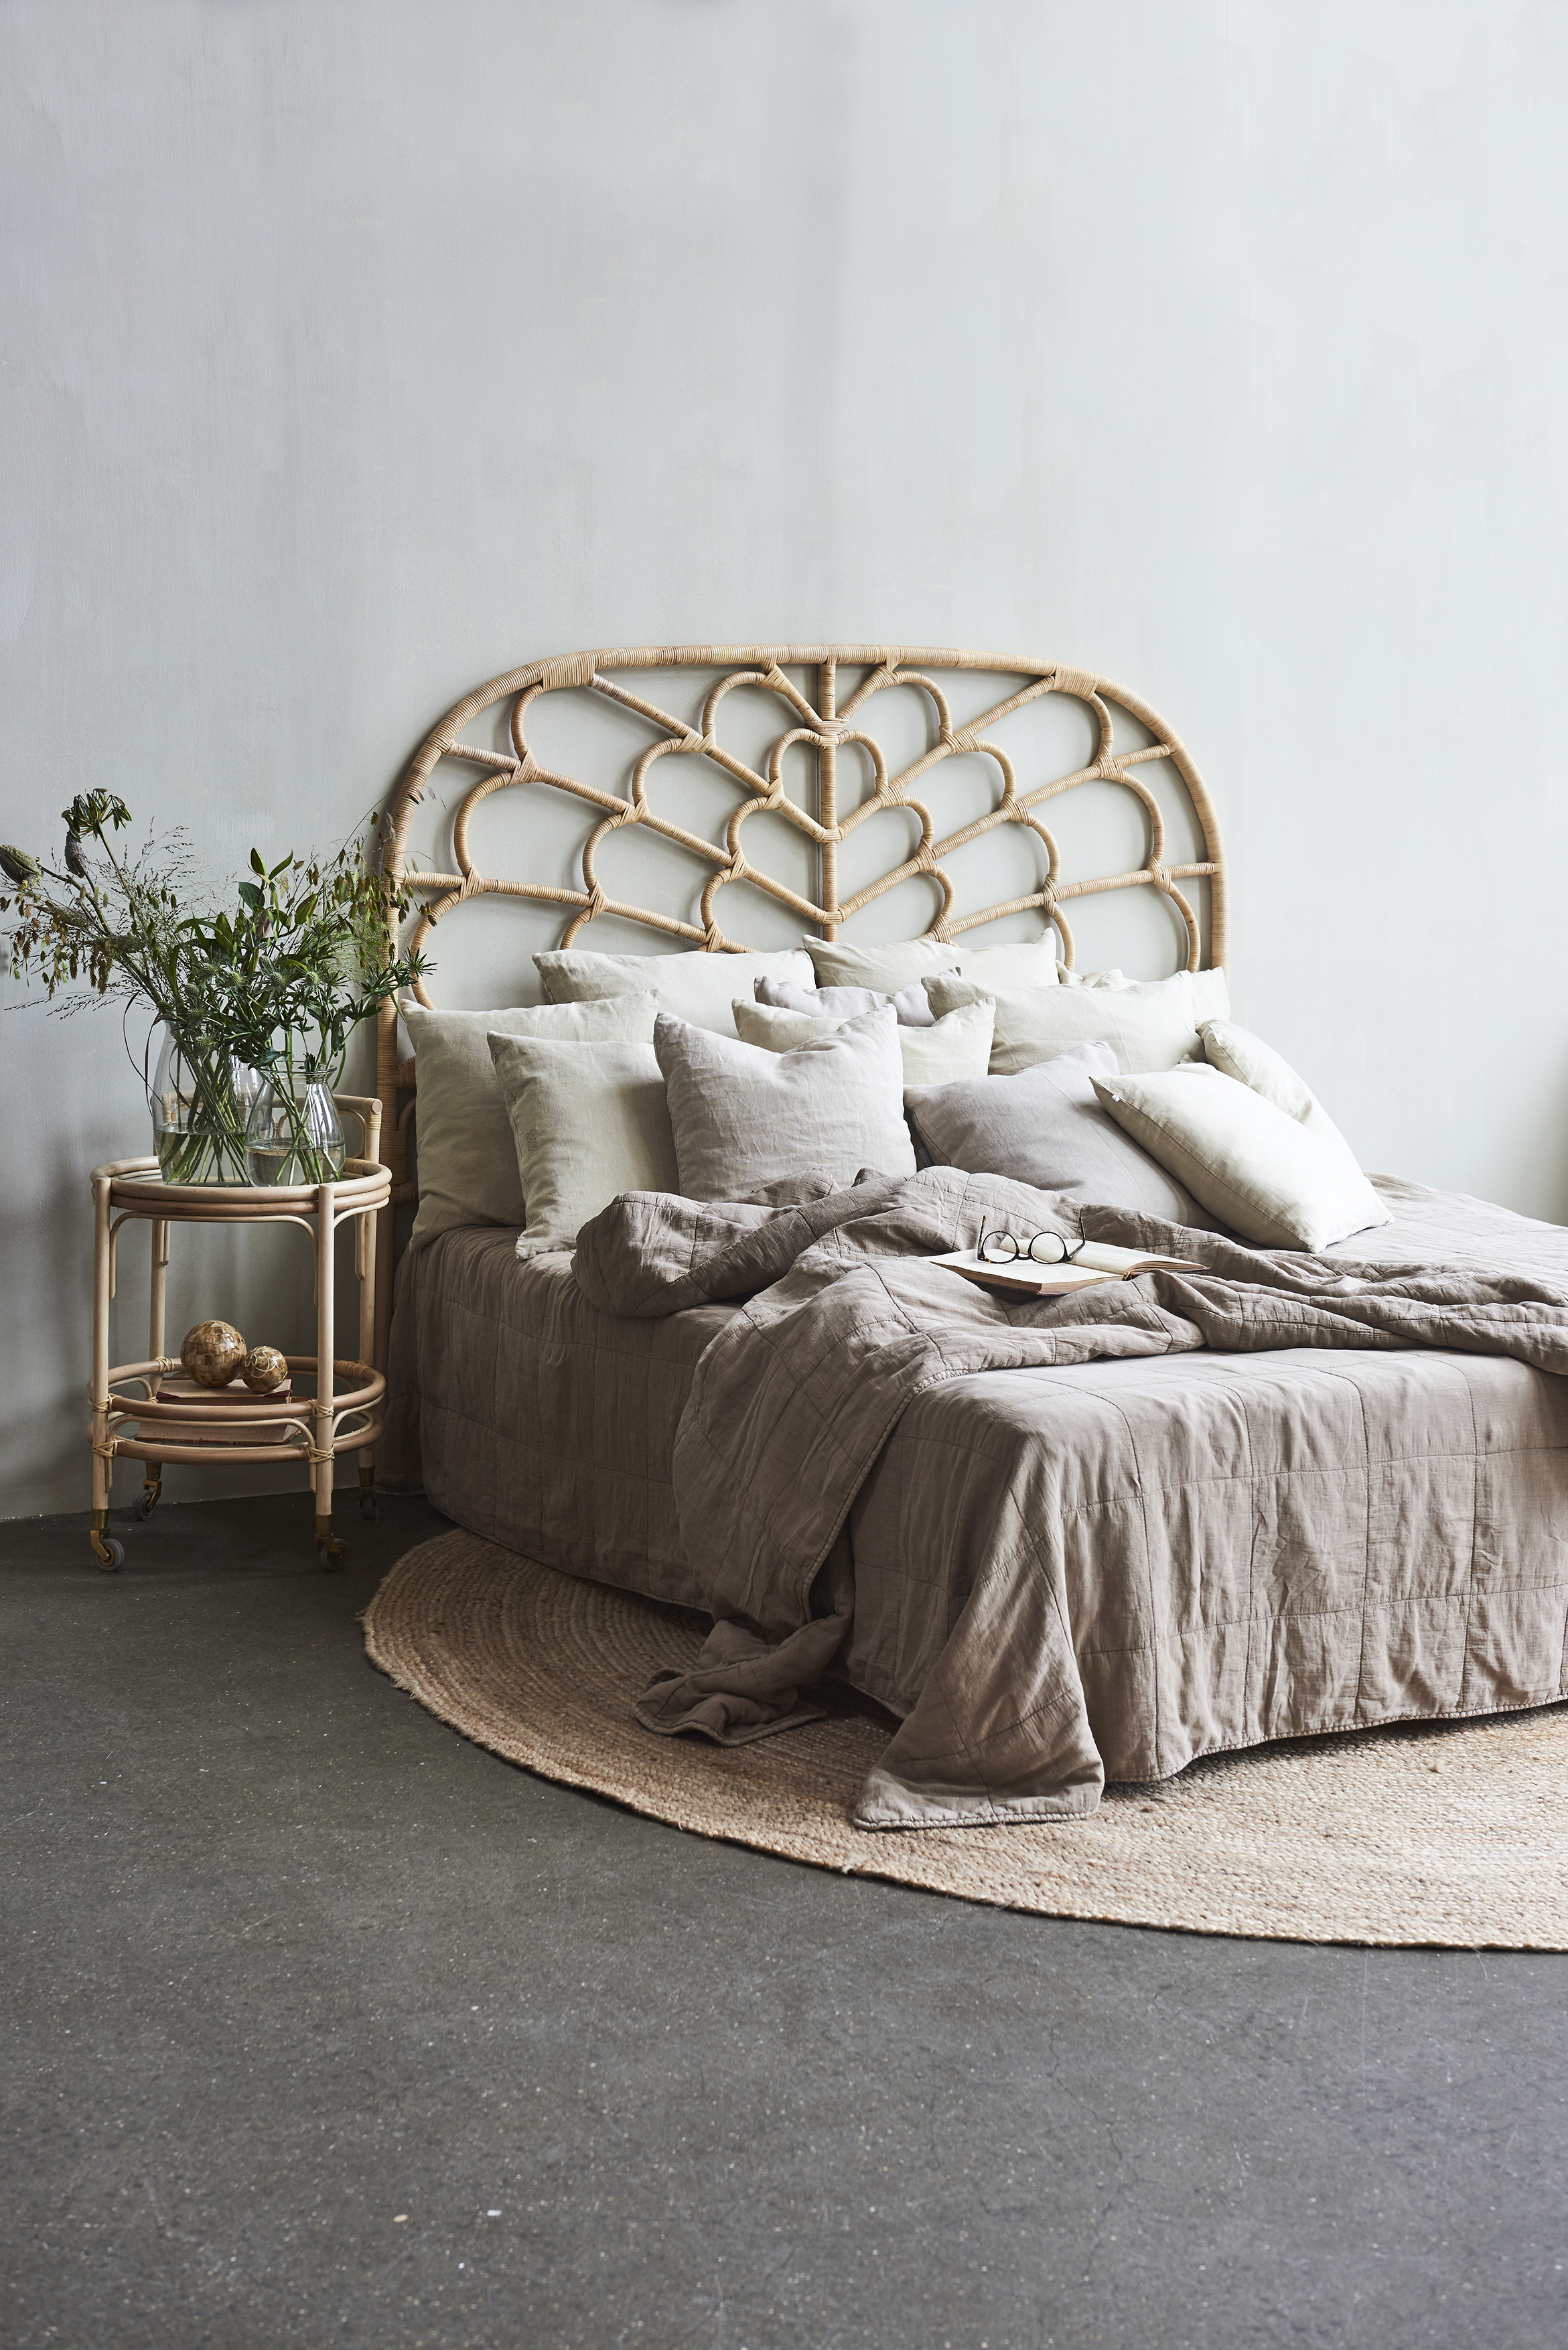 Interiors Trend: Rattan, Cane, Natural Style... Meet Sika Design!